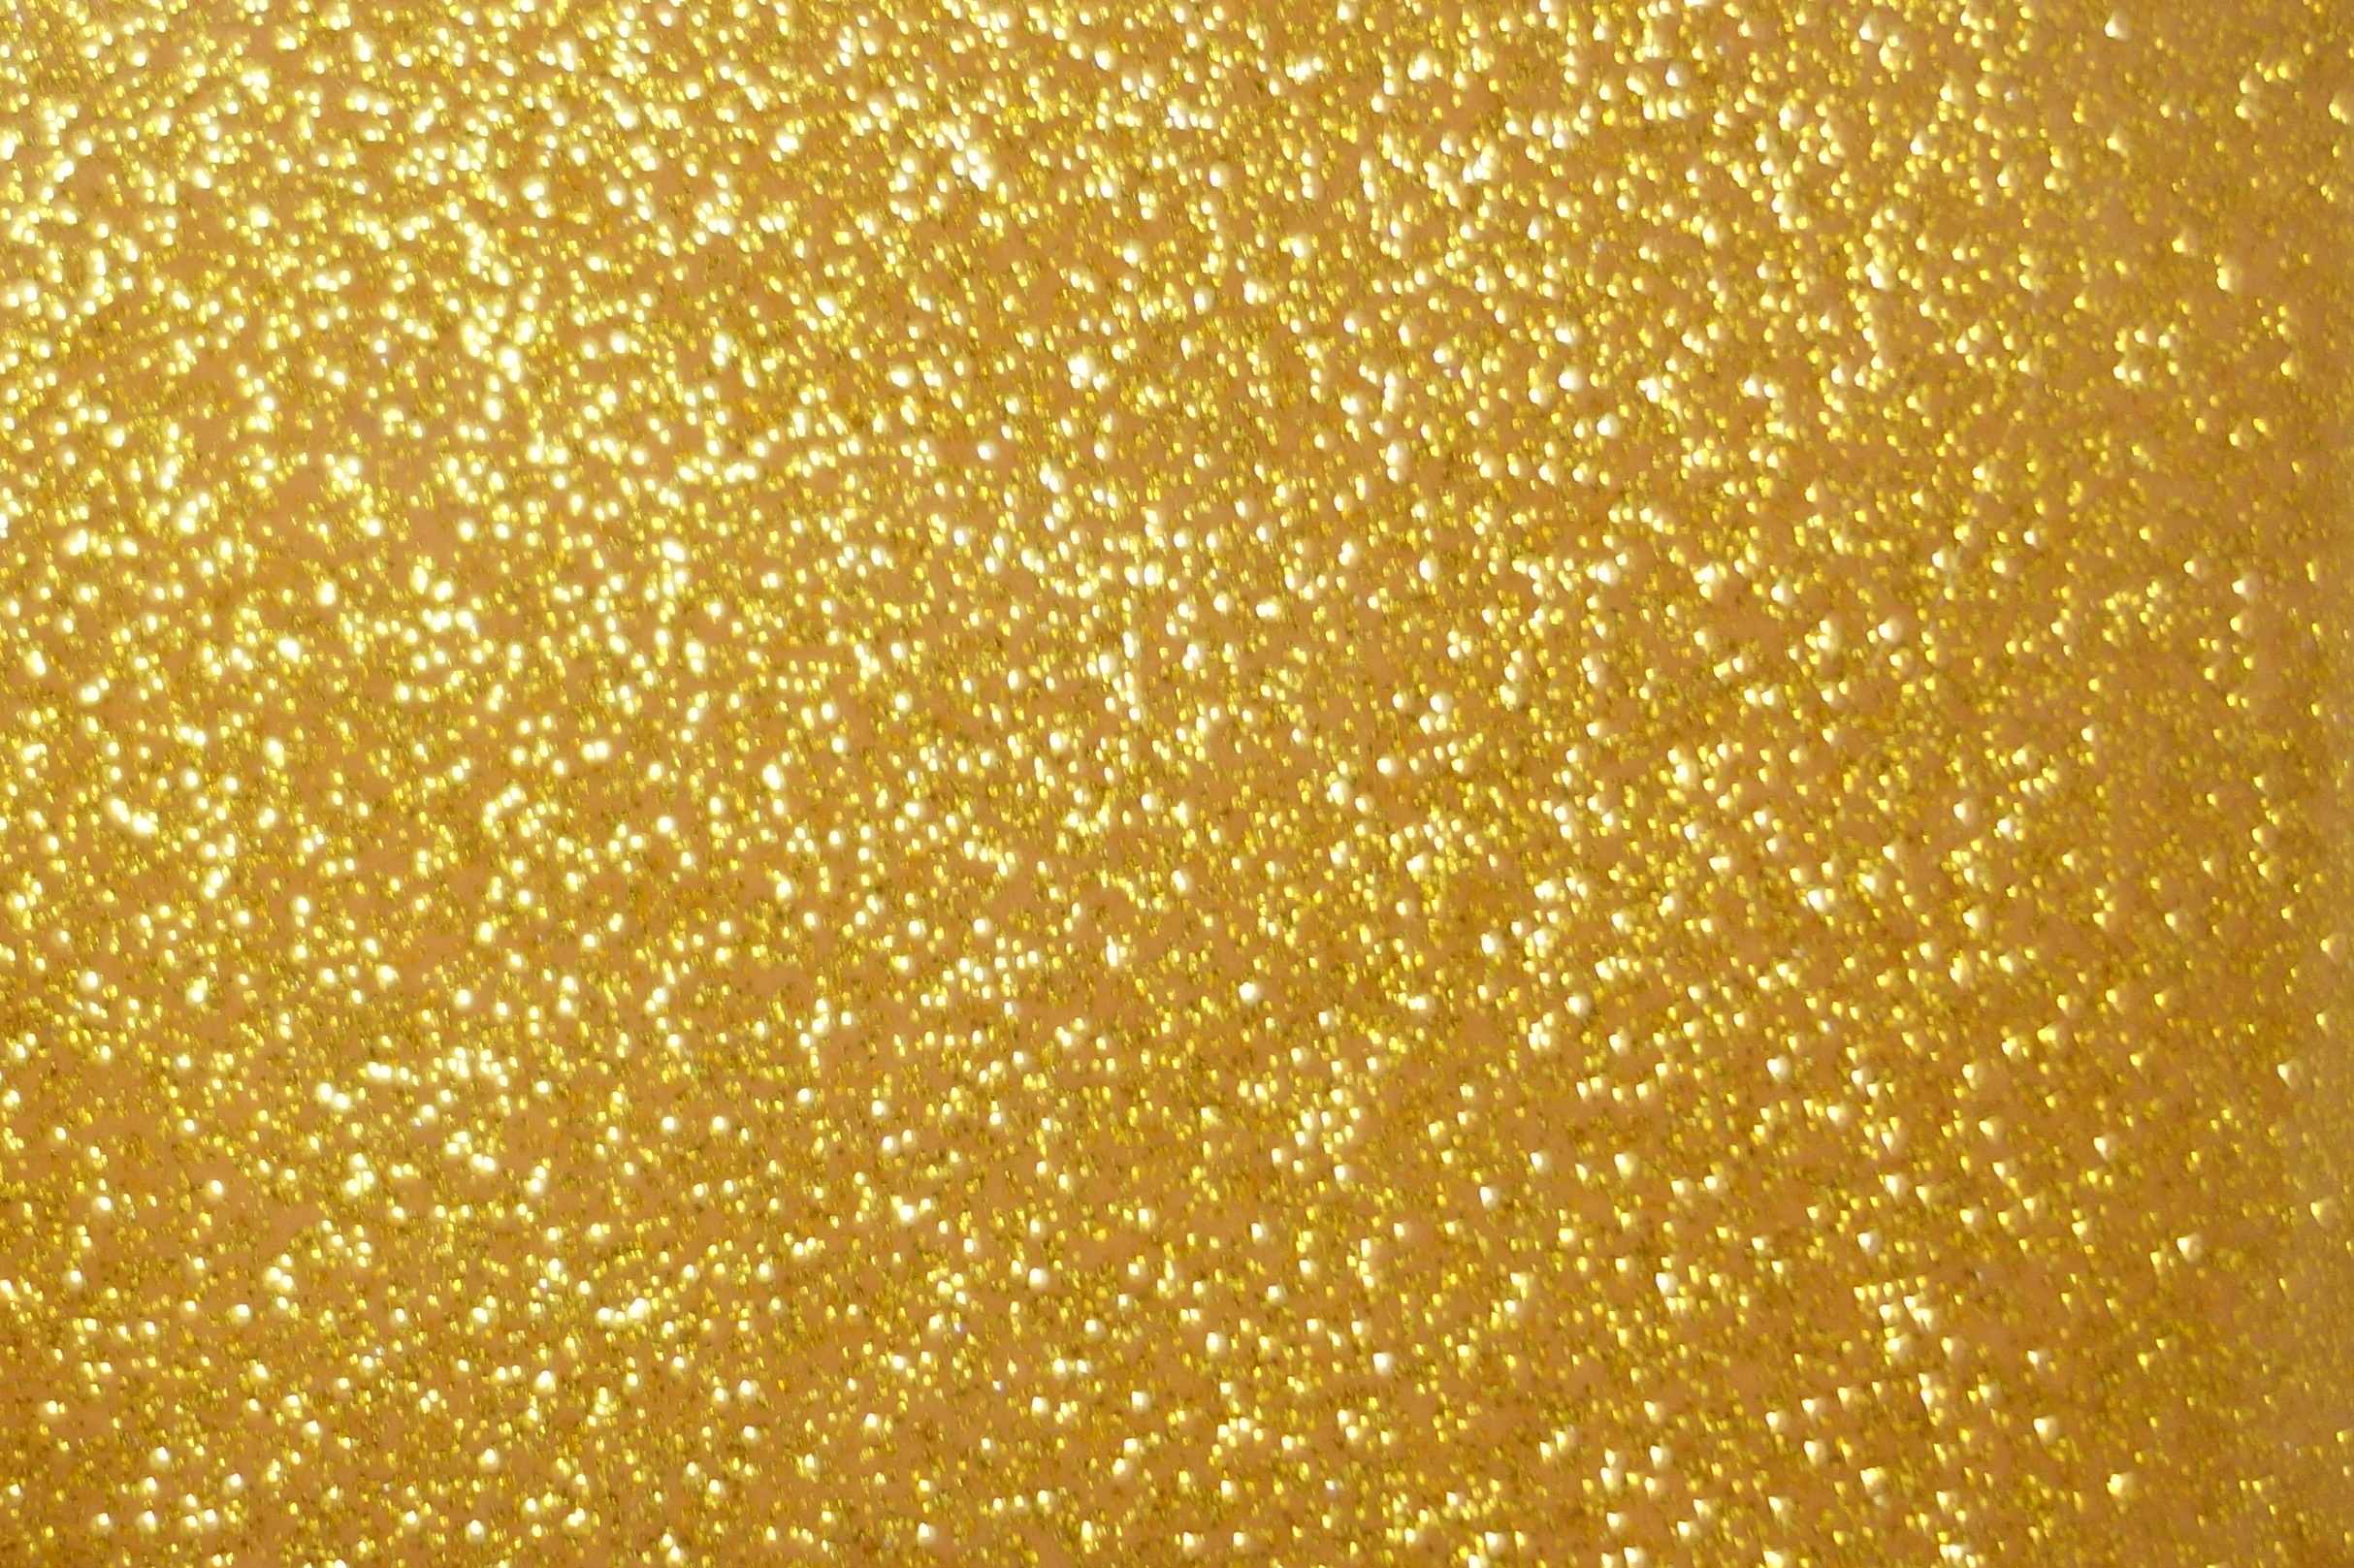 Gold Glitter Wallpaper HD | PixelsTalk Net